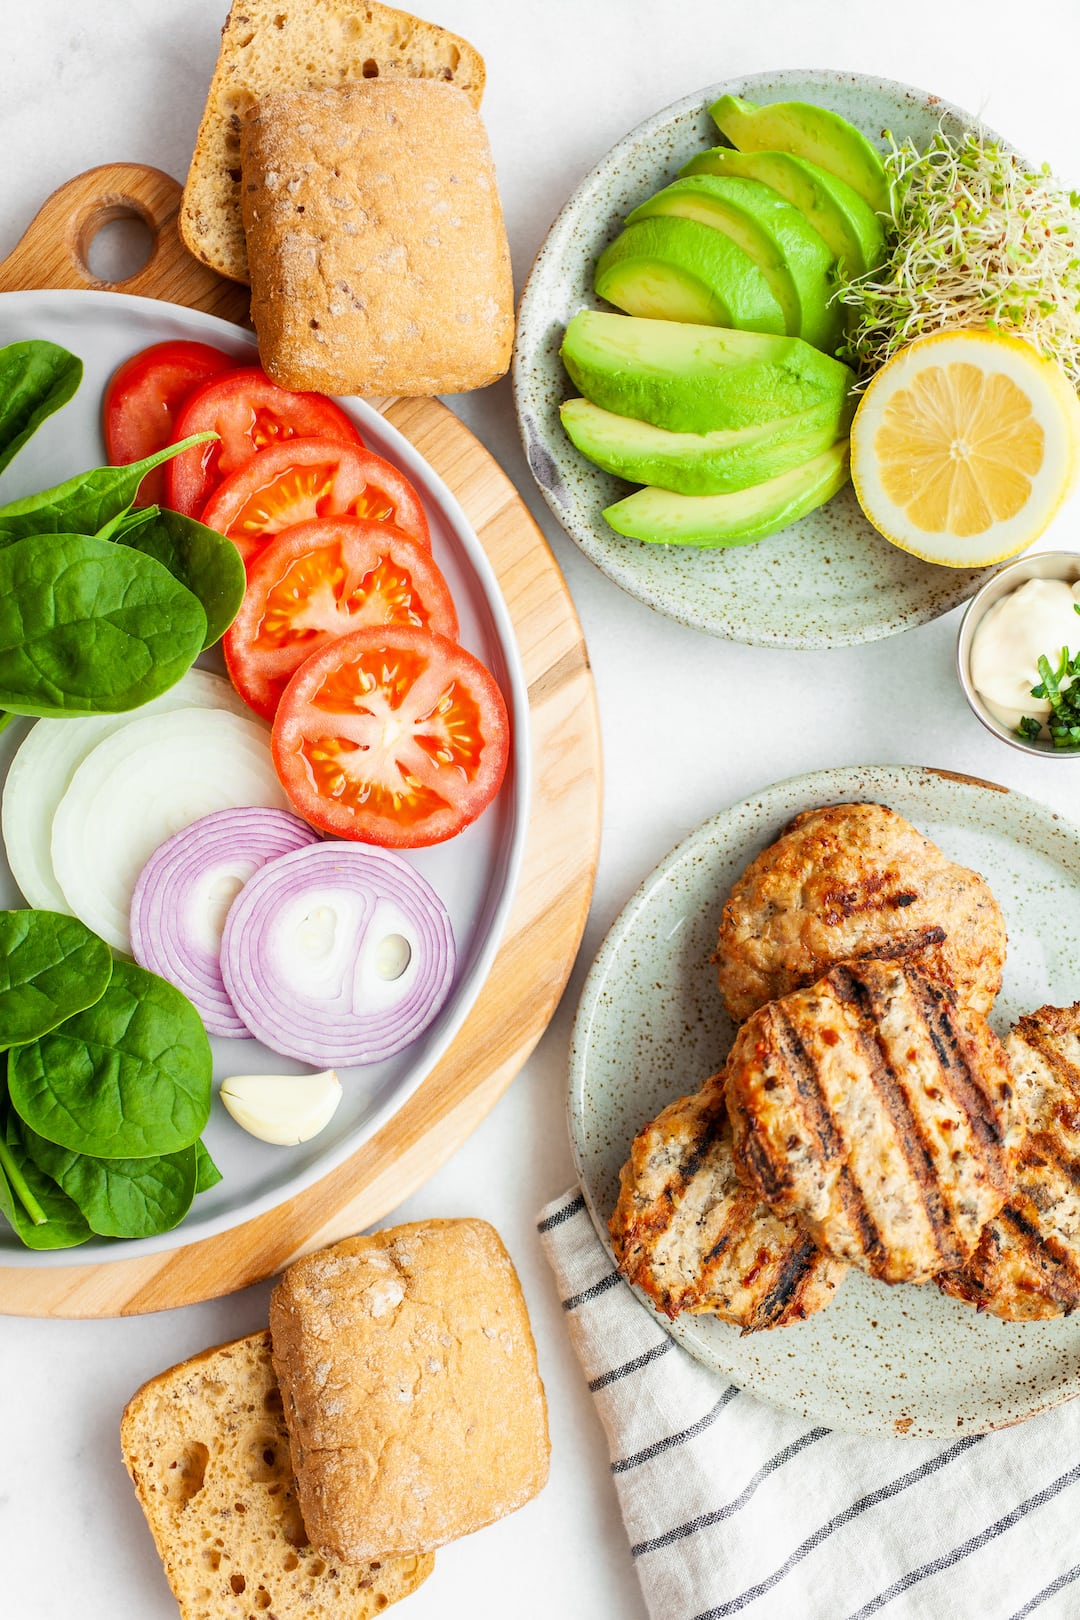 How To Make - Best Healthy Turkey Burger Recipe with Avocado